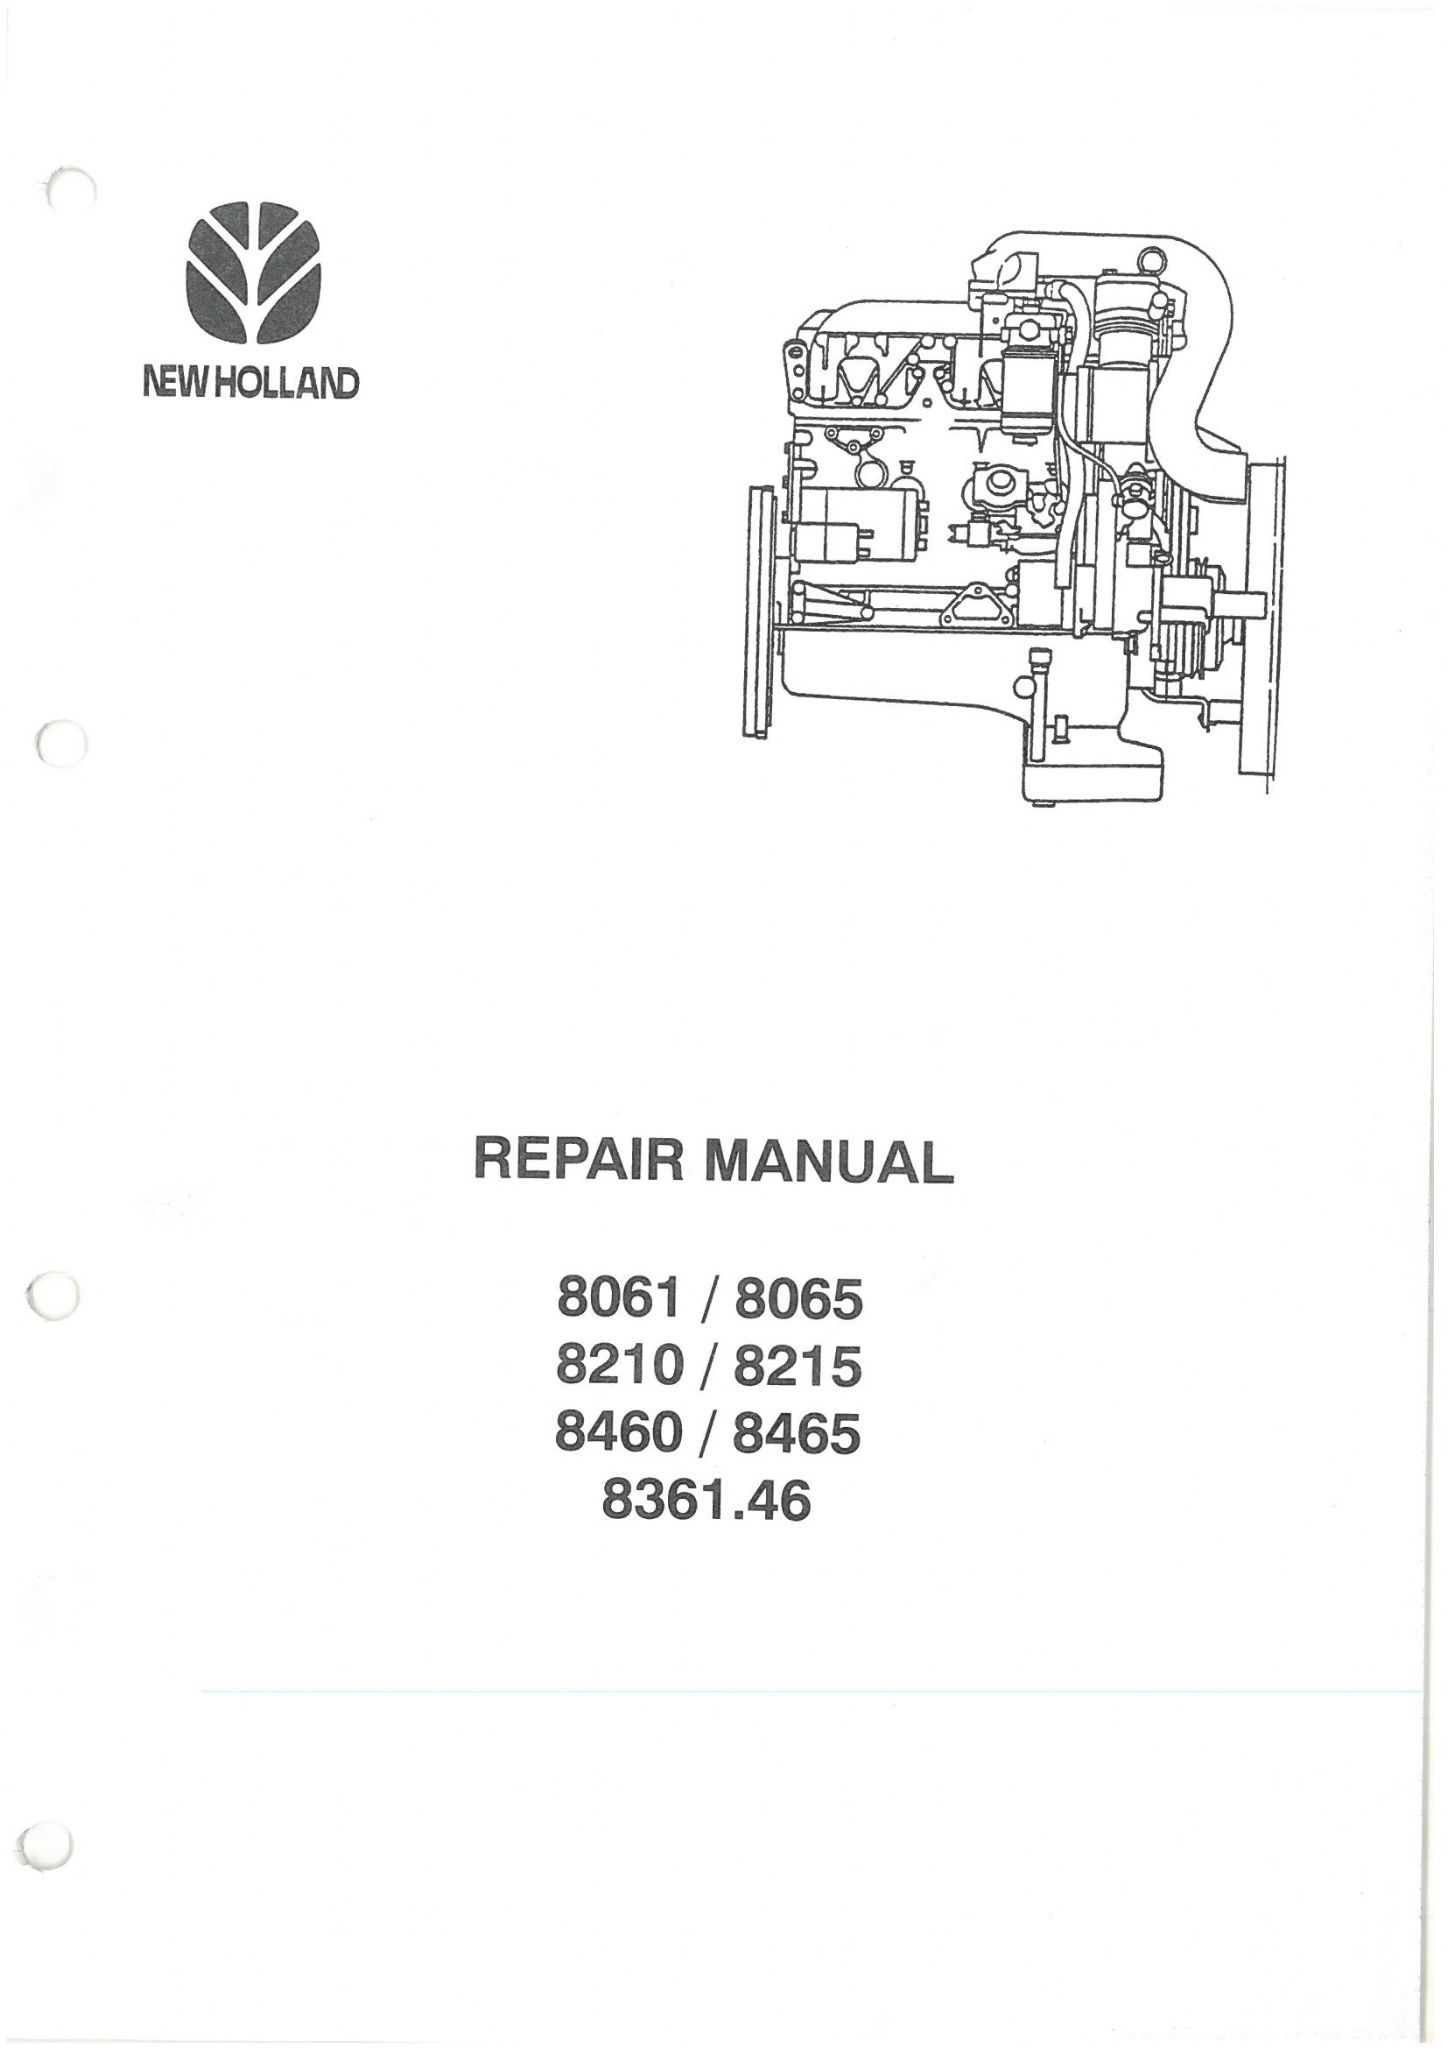 new holland aifo iveco diesel engine type 8215 8210 sri sre rh agrimanuals com Iveco Engine Specifications manuale iveco aifo 8061